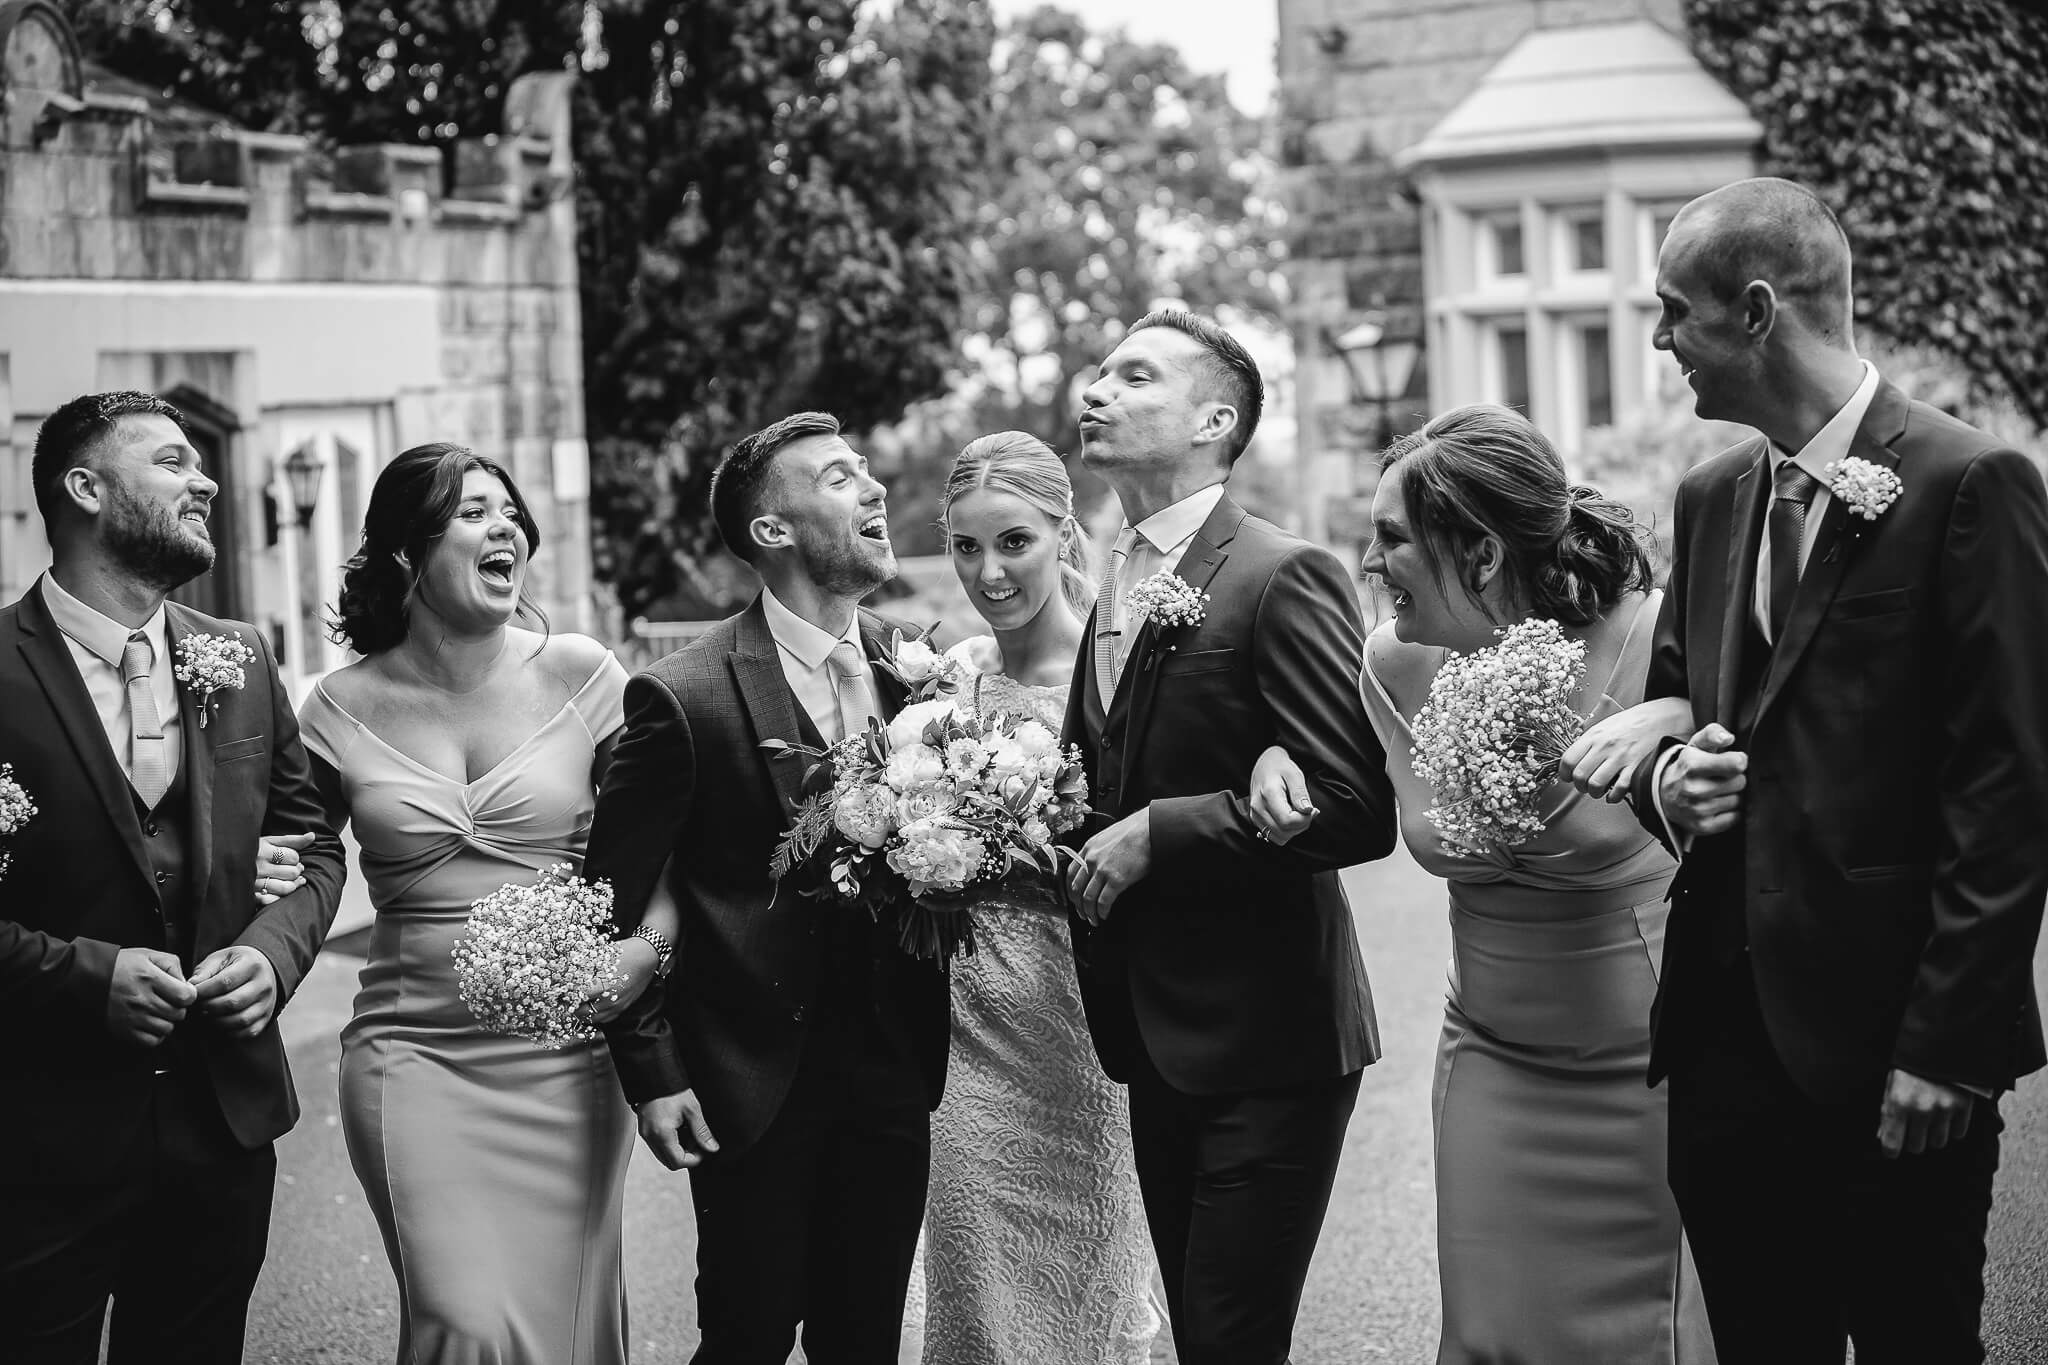 best-wedding-photographers-uk-europe-stanbury-photography-117